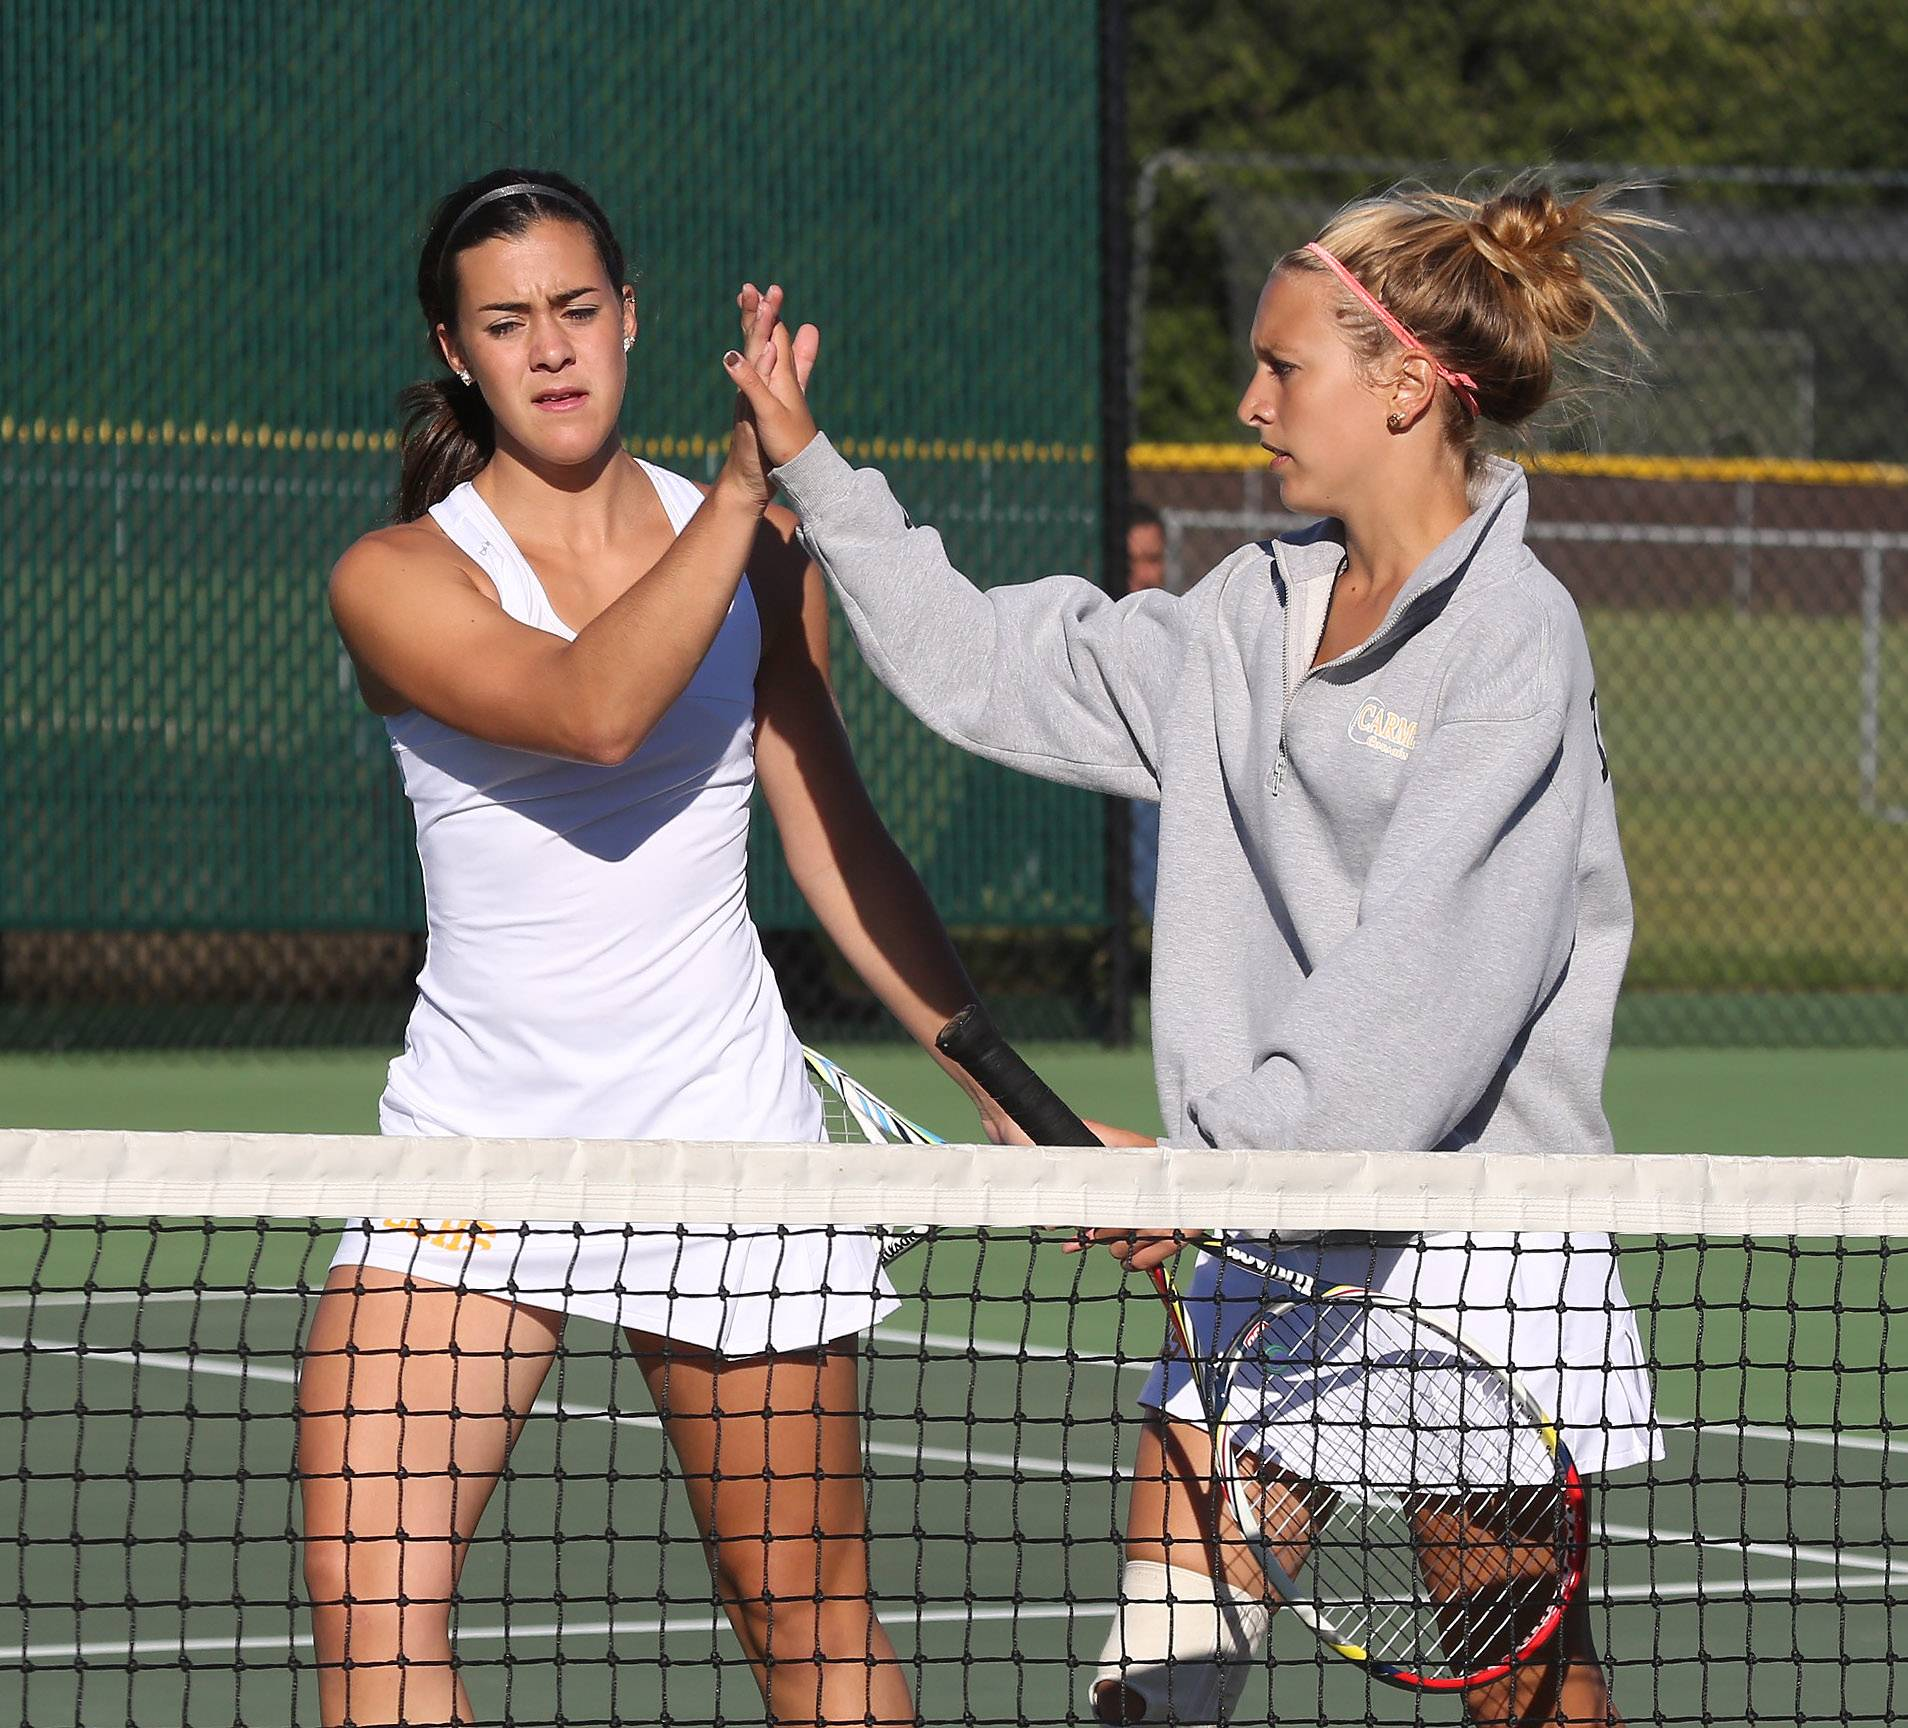 Carmel's doubles teammates Kathleen Felicelli, left, and Michelle Kannenberg congratulate each other after winning a set against Barrington.